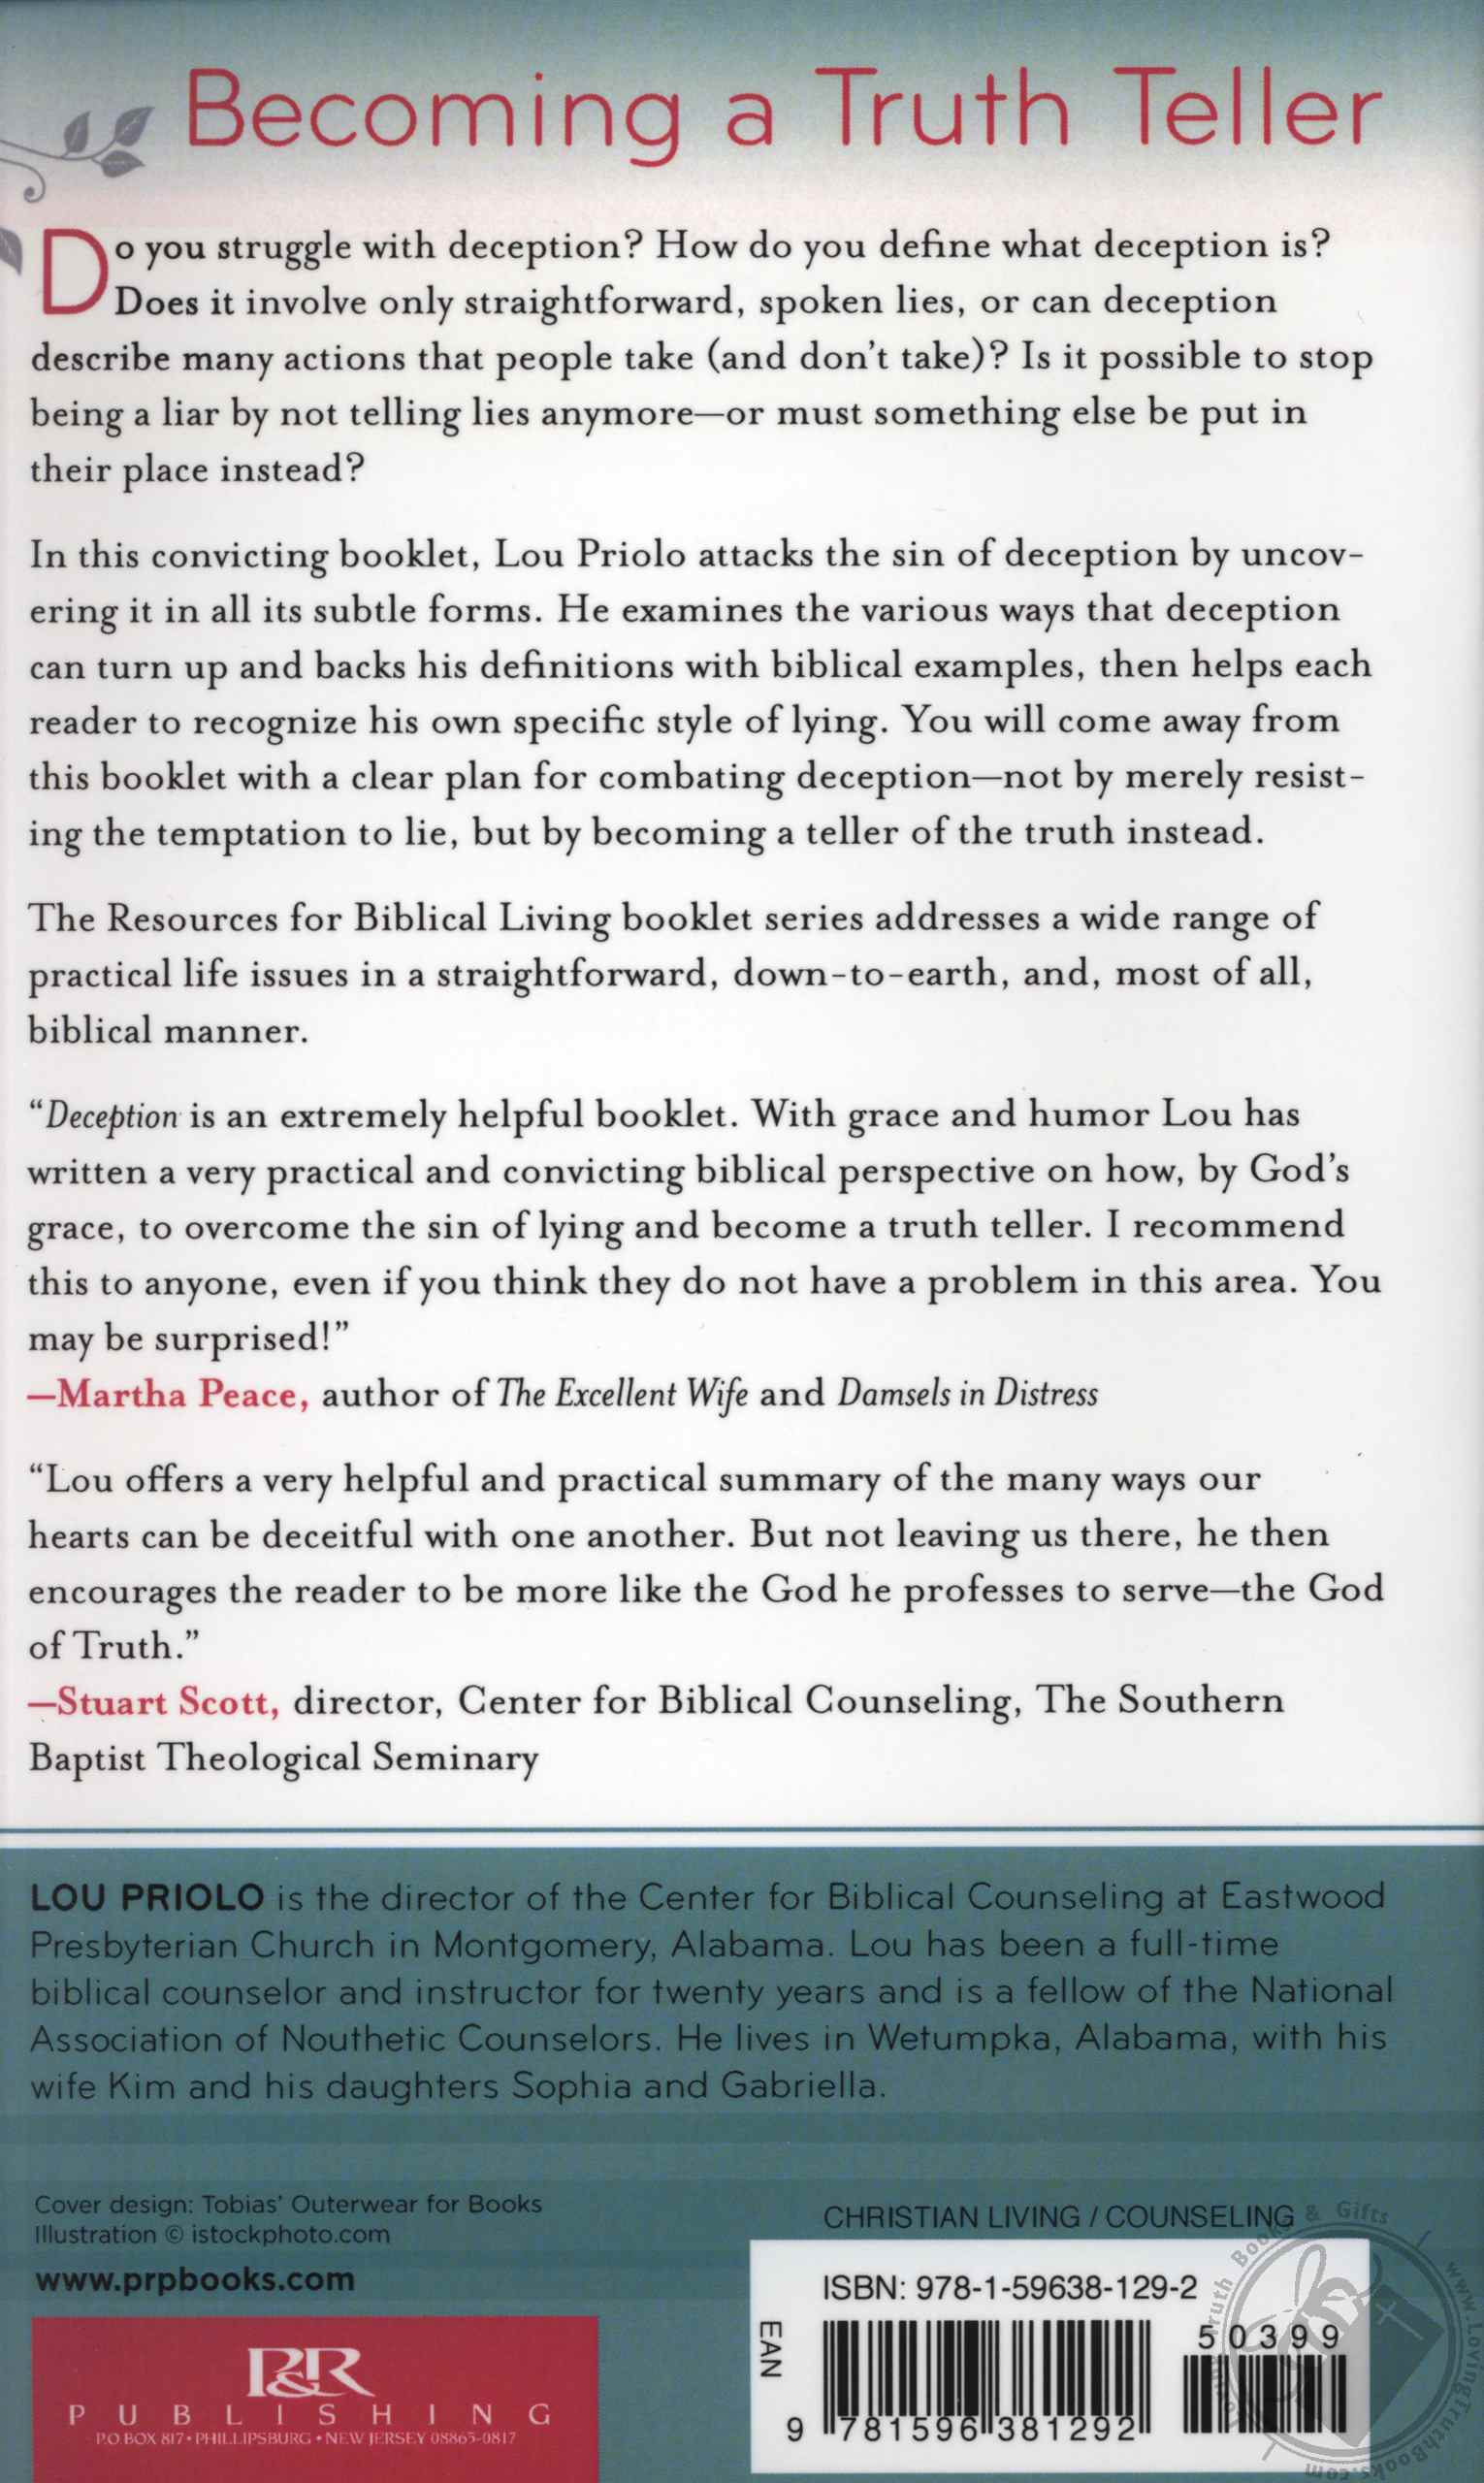 Deception Letting Go Of Lying Resources For Biblical Living By Lou Priolo Book Booklet